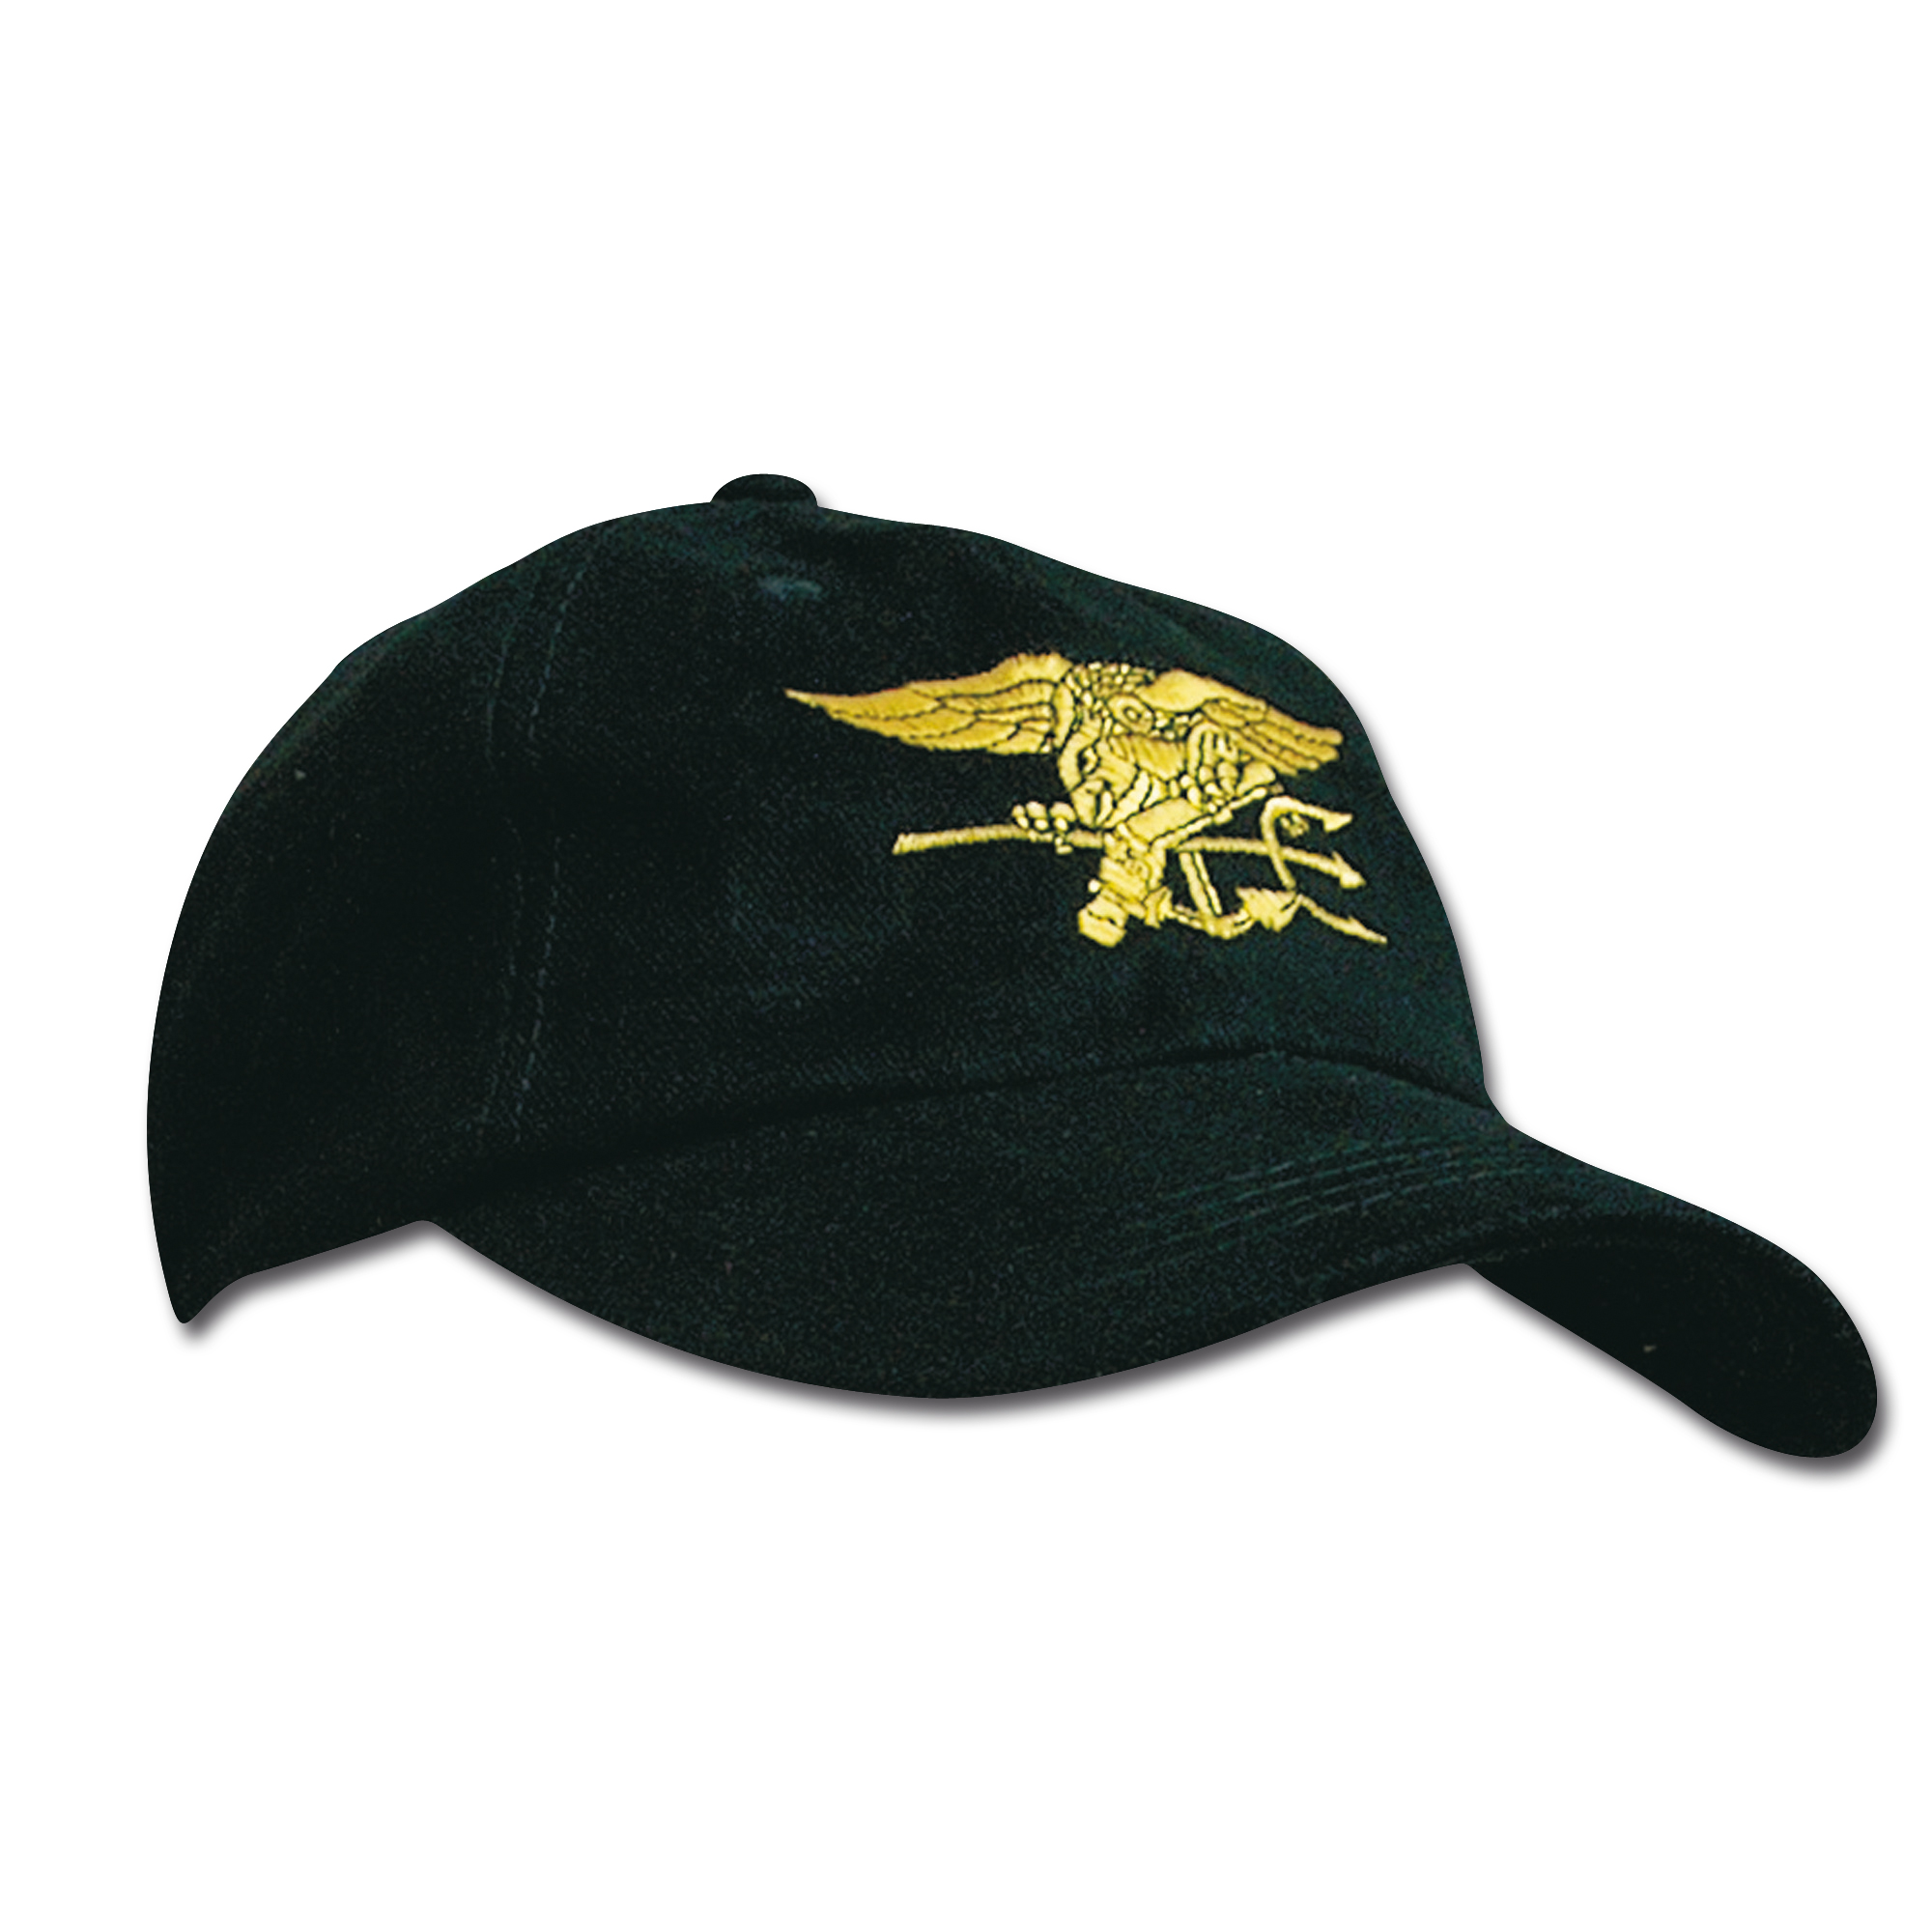 Baseball Cap Navy Seals Trident